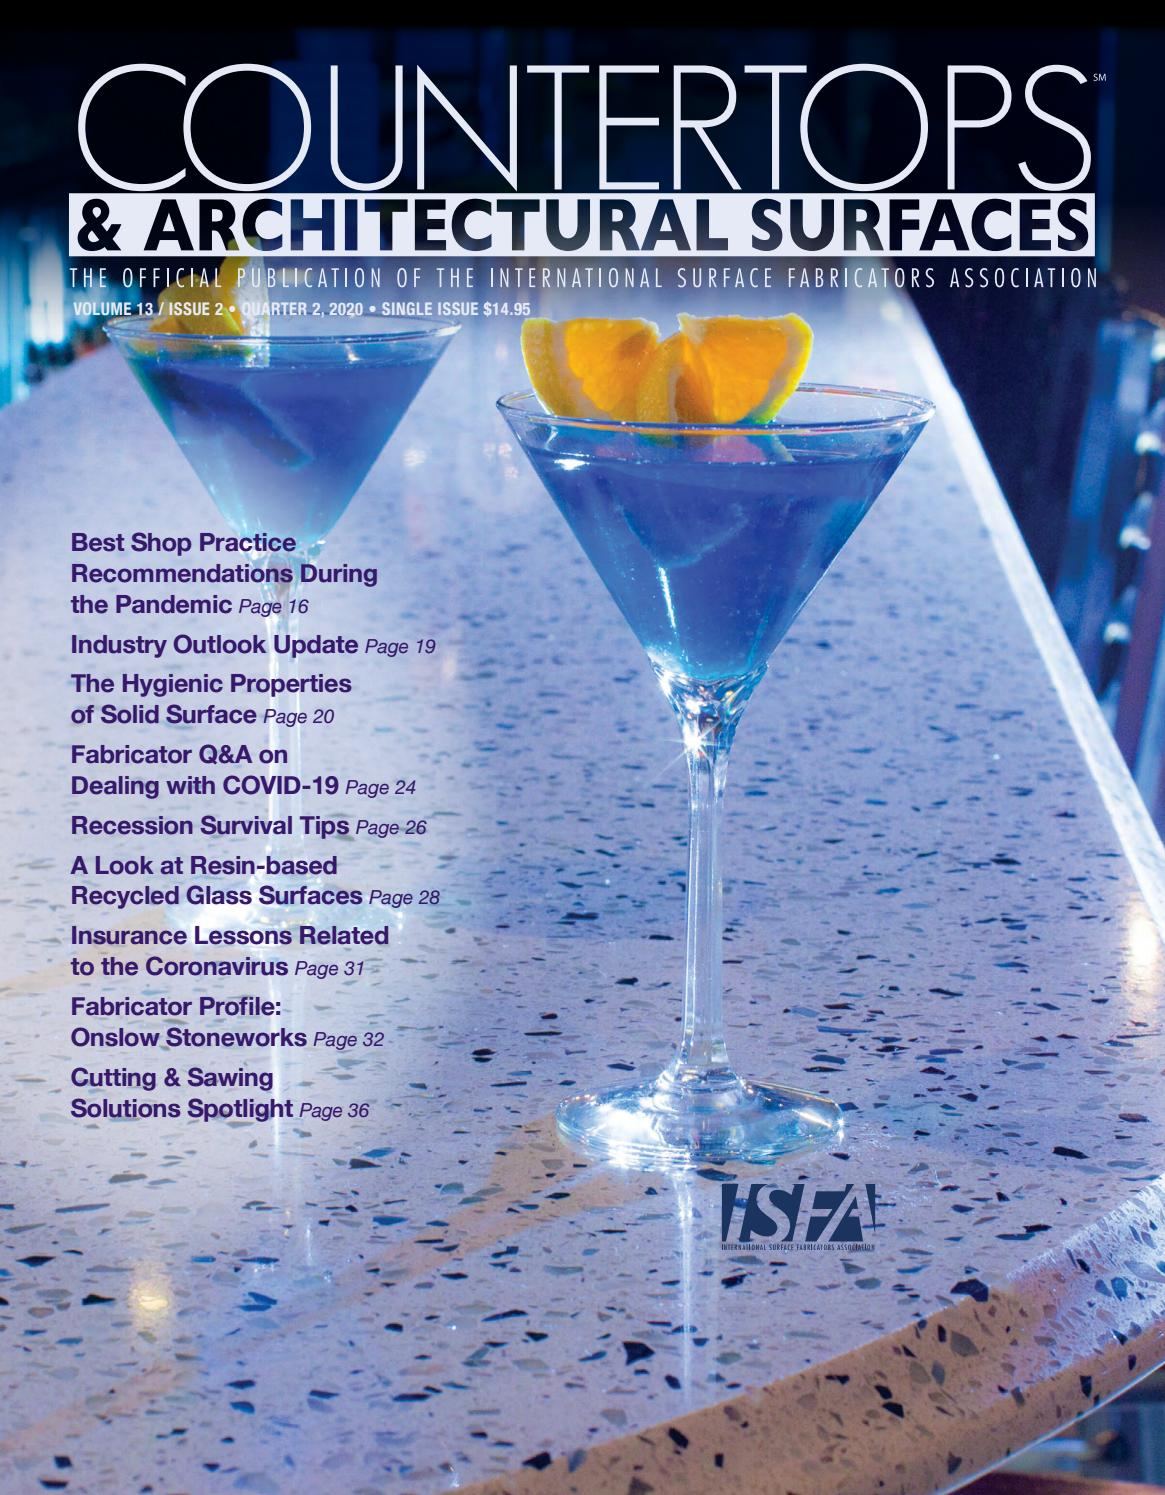 Isfa S Countertops Architectural Surfaces Vol 13 Issue 2 Q2 2020 By Isfa Issuu